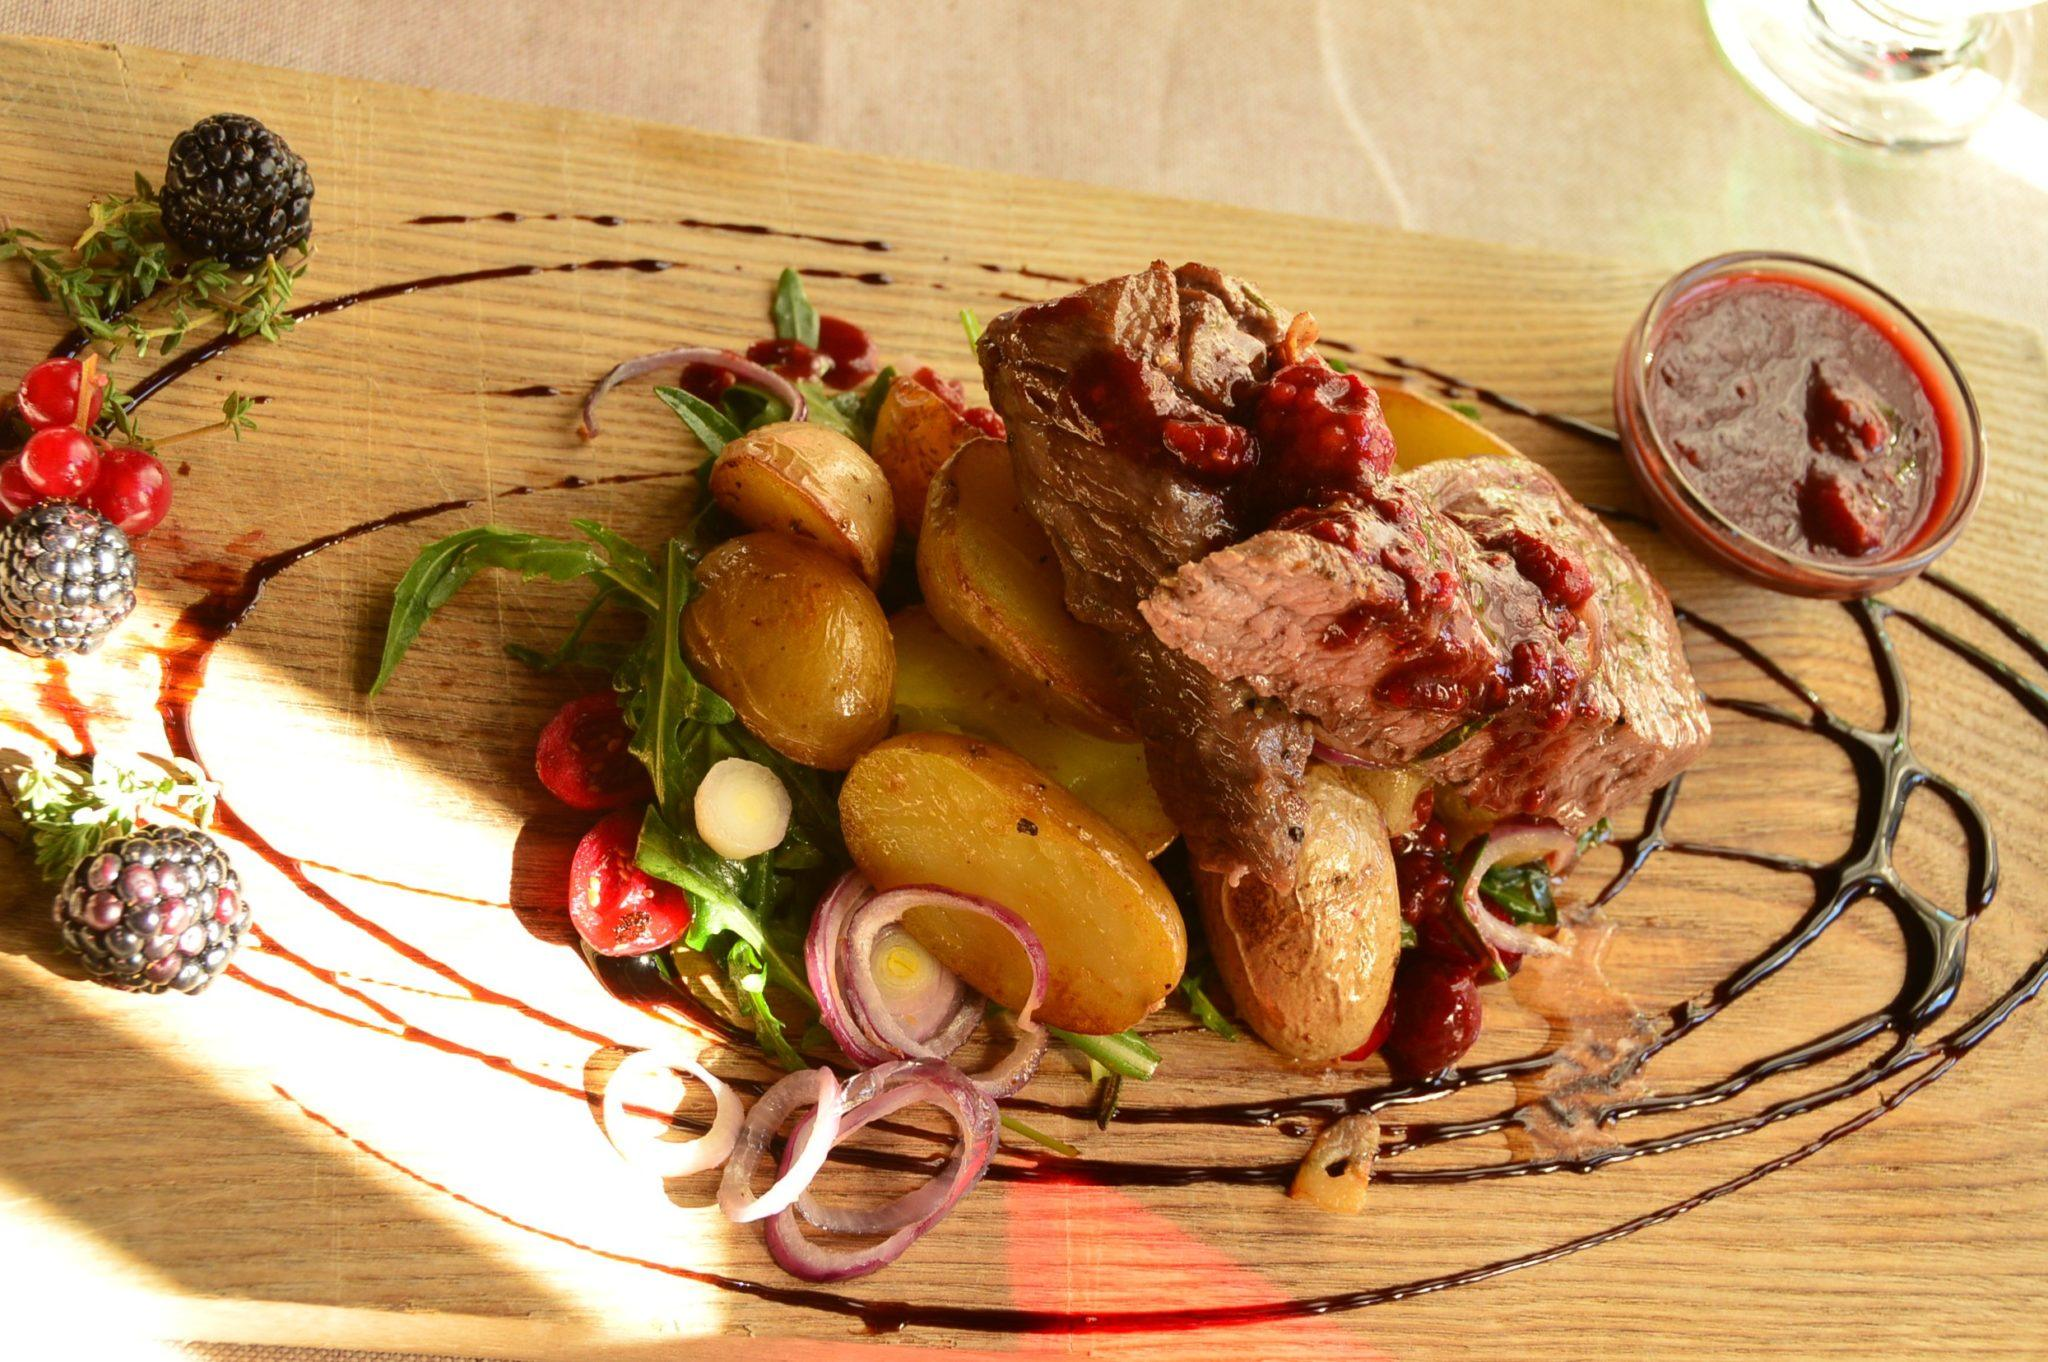 Lamb dish at Maja restaurant Riga Latvia